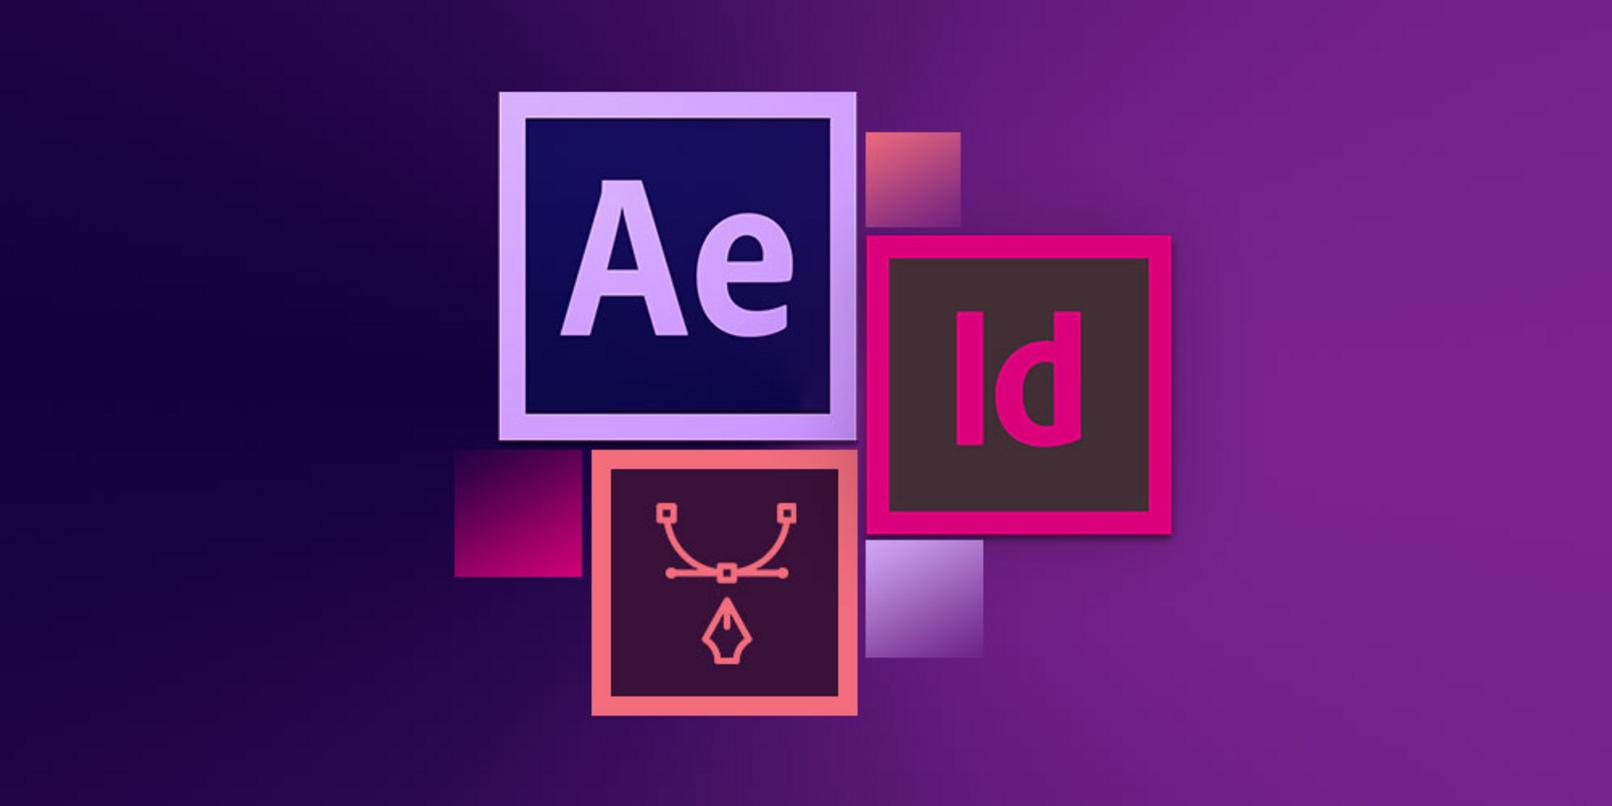 Learn how to use Adobe apps to create the coolest digital design work ever, for just $31